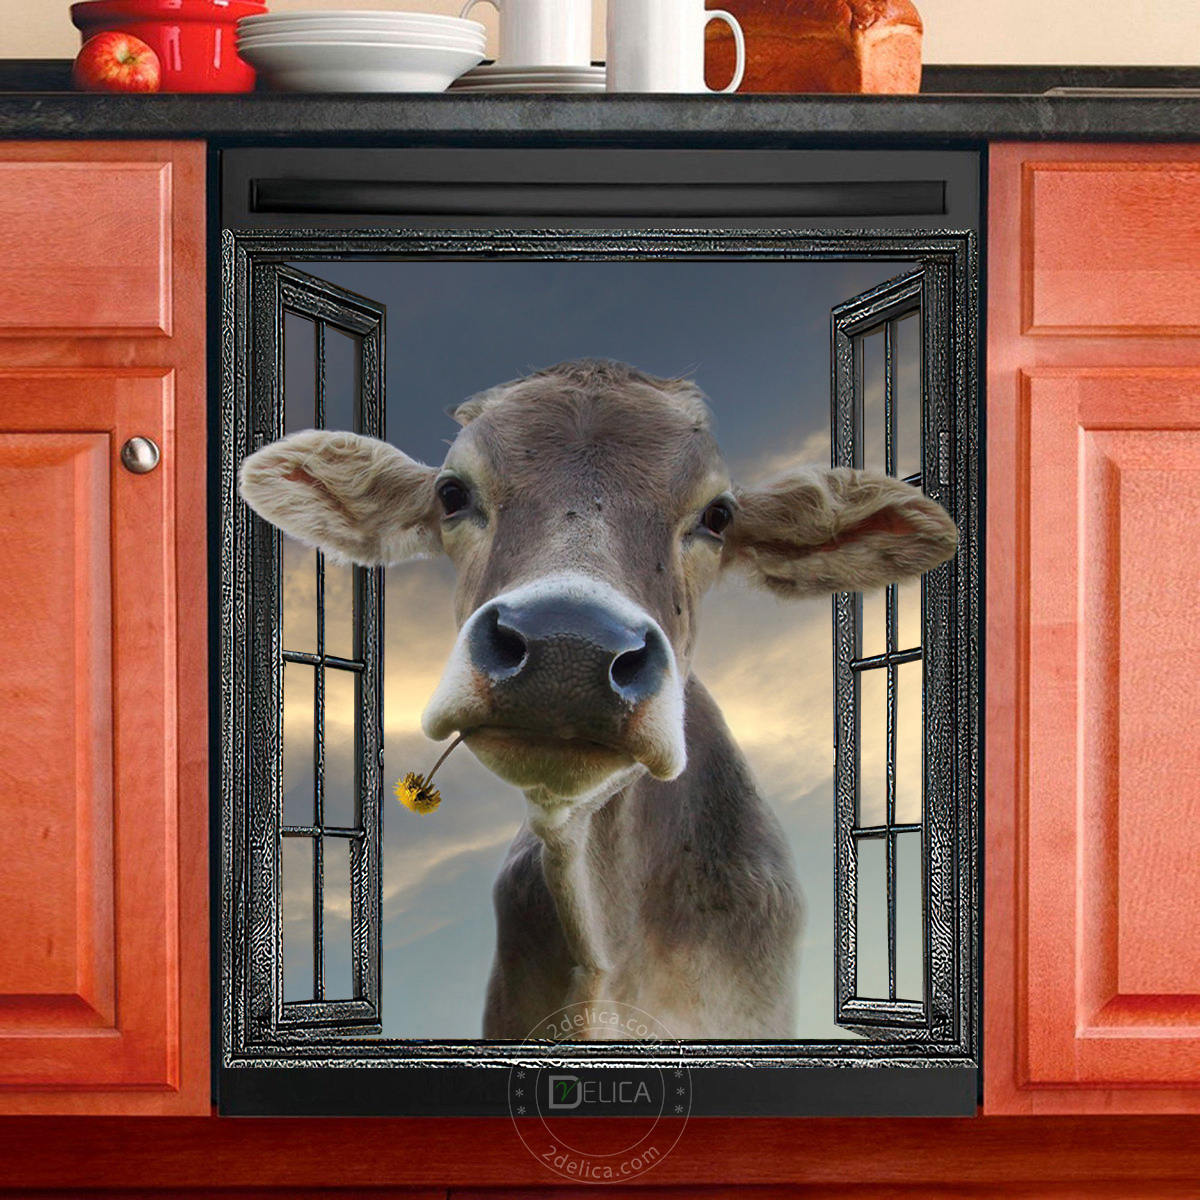 Dishwasher Cover - Funny Cow 04